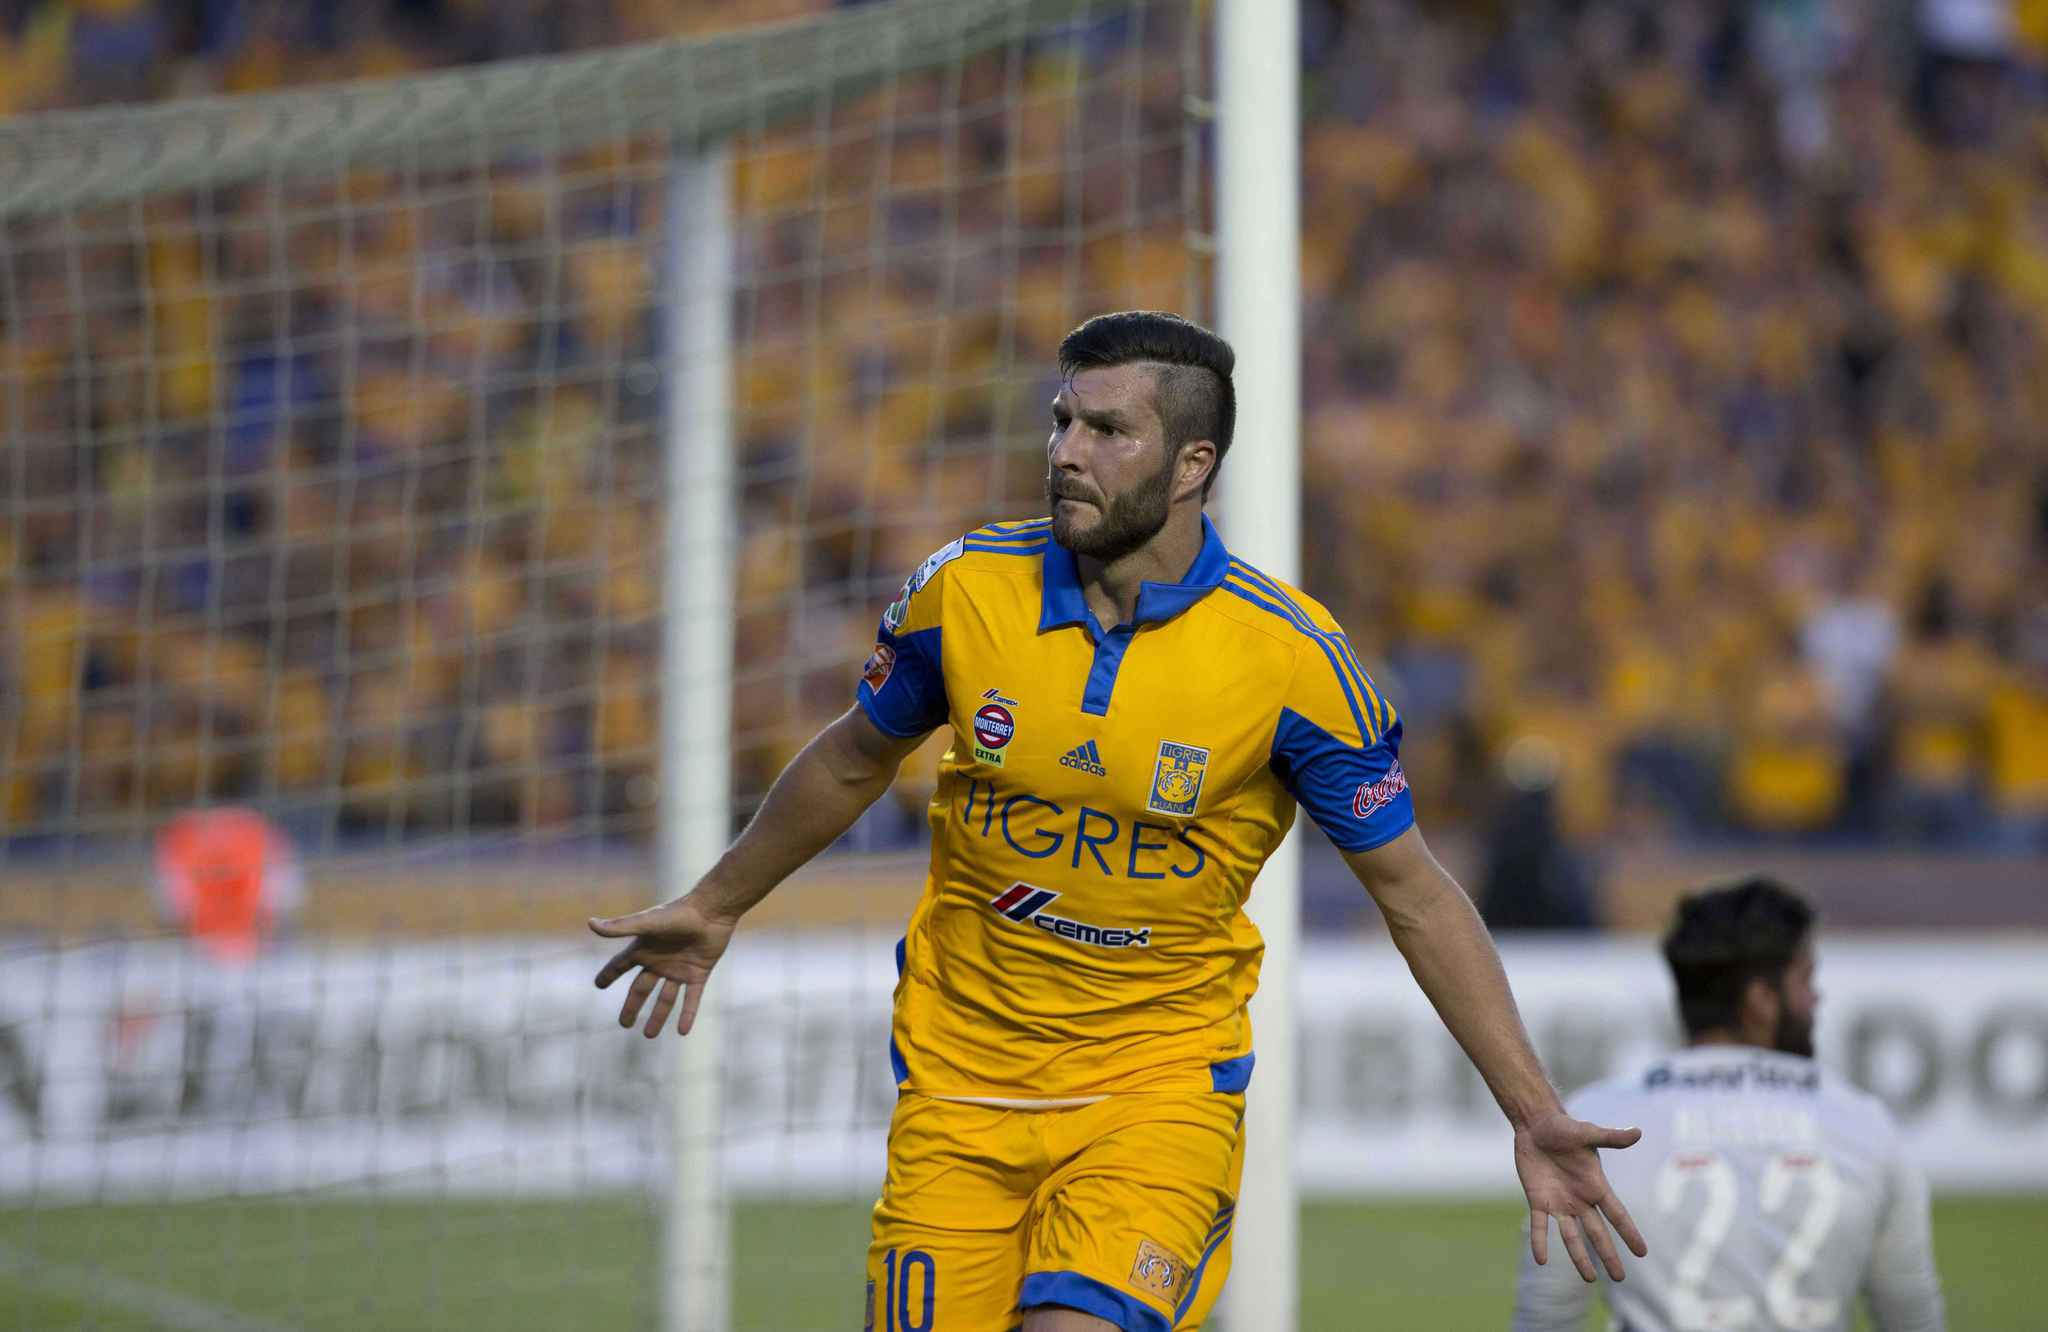 2048x1536-fit_le-club-a-change-pour-andre-pierre-gignac-pas-sa-traditionnelle-celebration-de-but